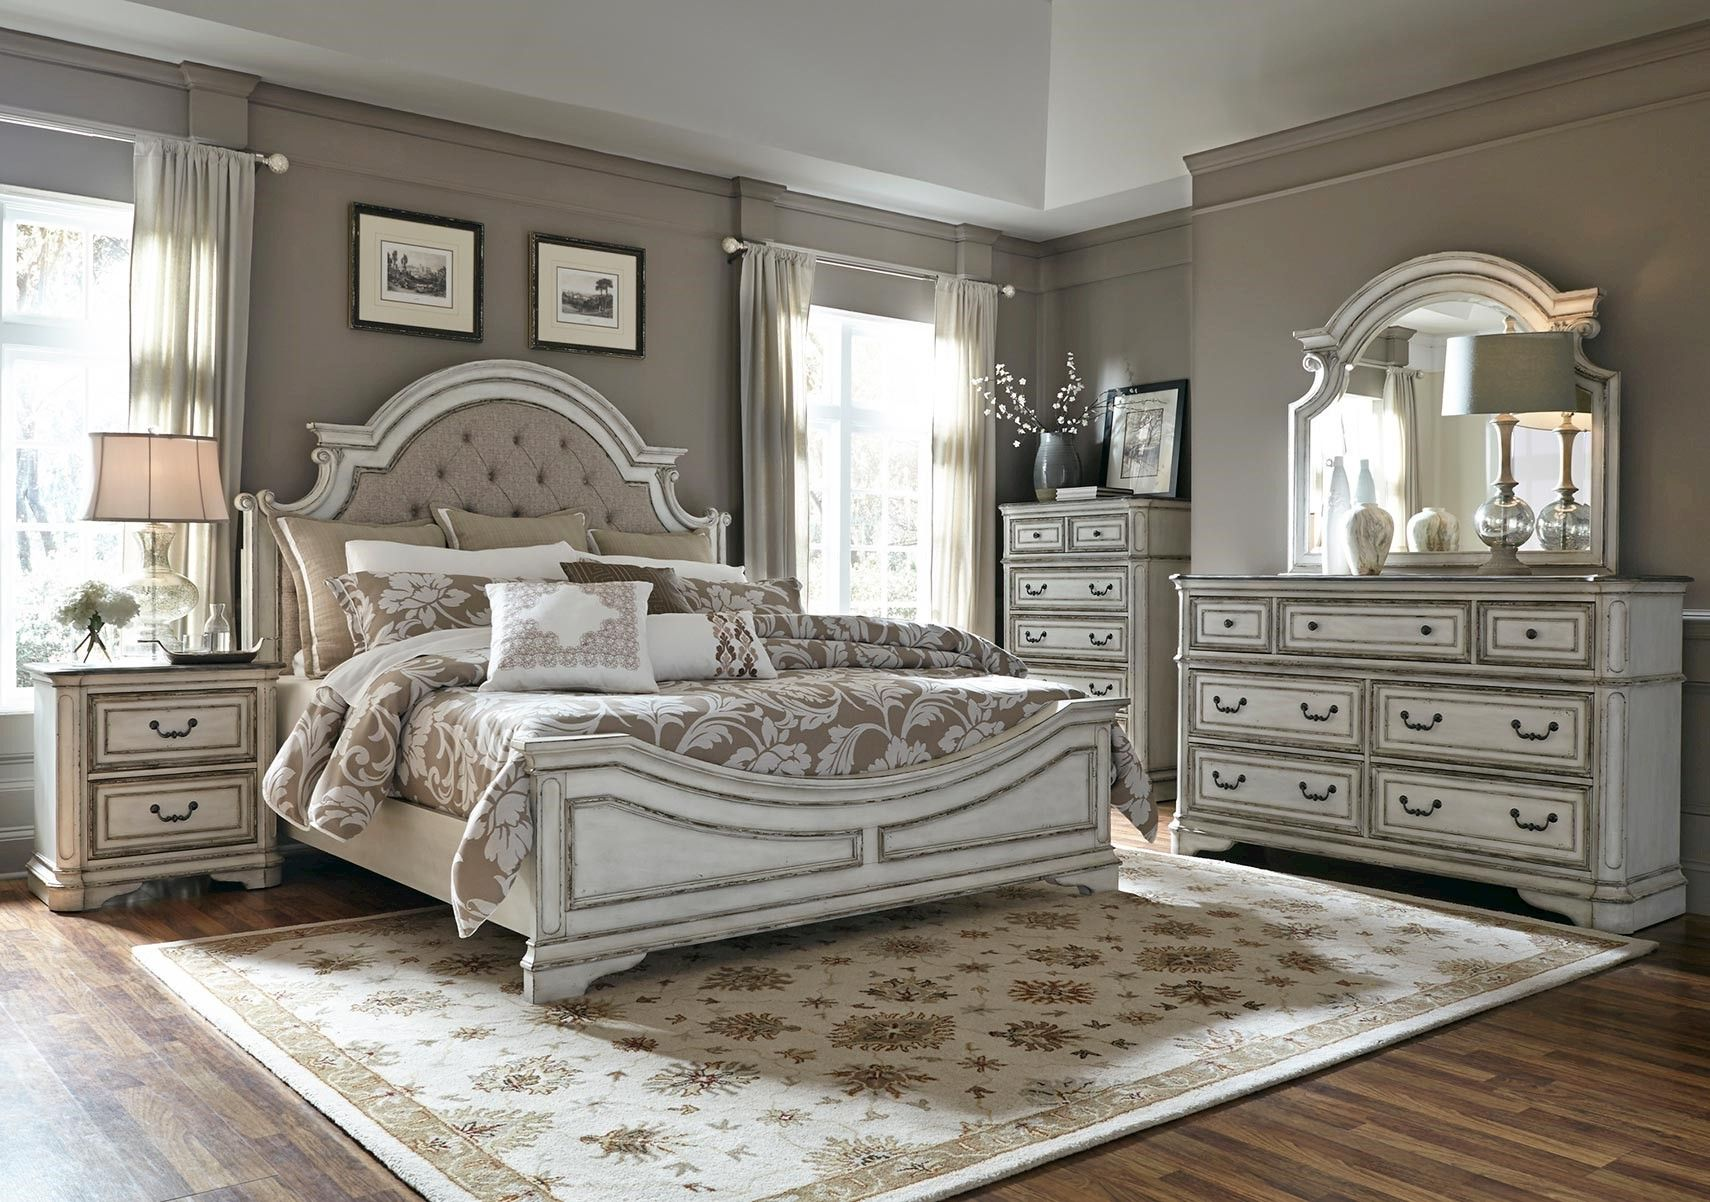 Lacks Magnolia Manor 4 Pc Queen Bedroom Set Bedroom Furniture